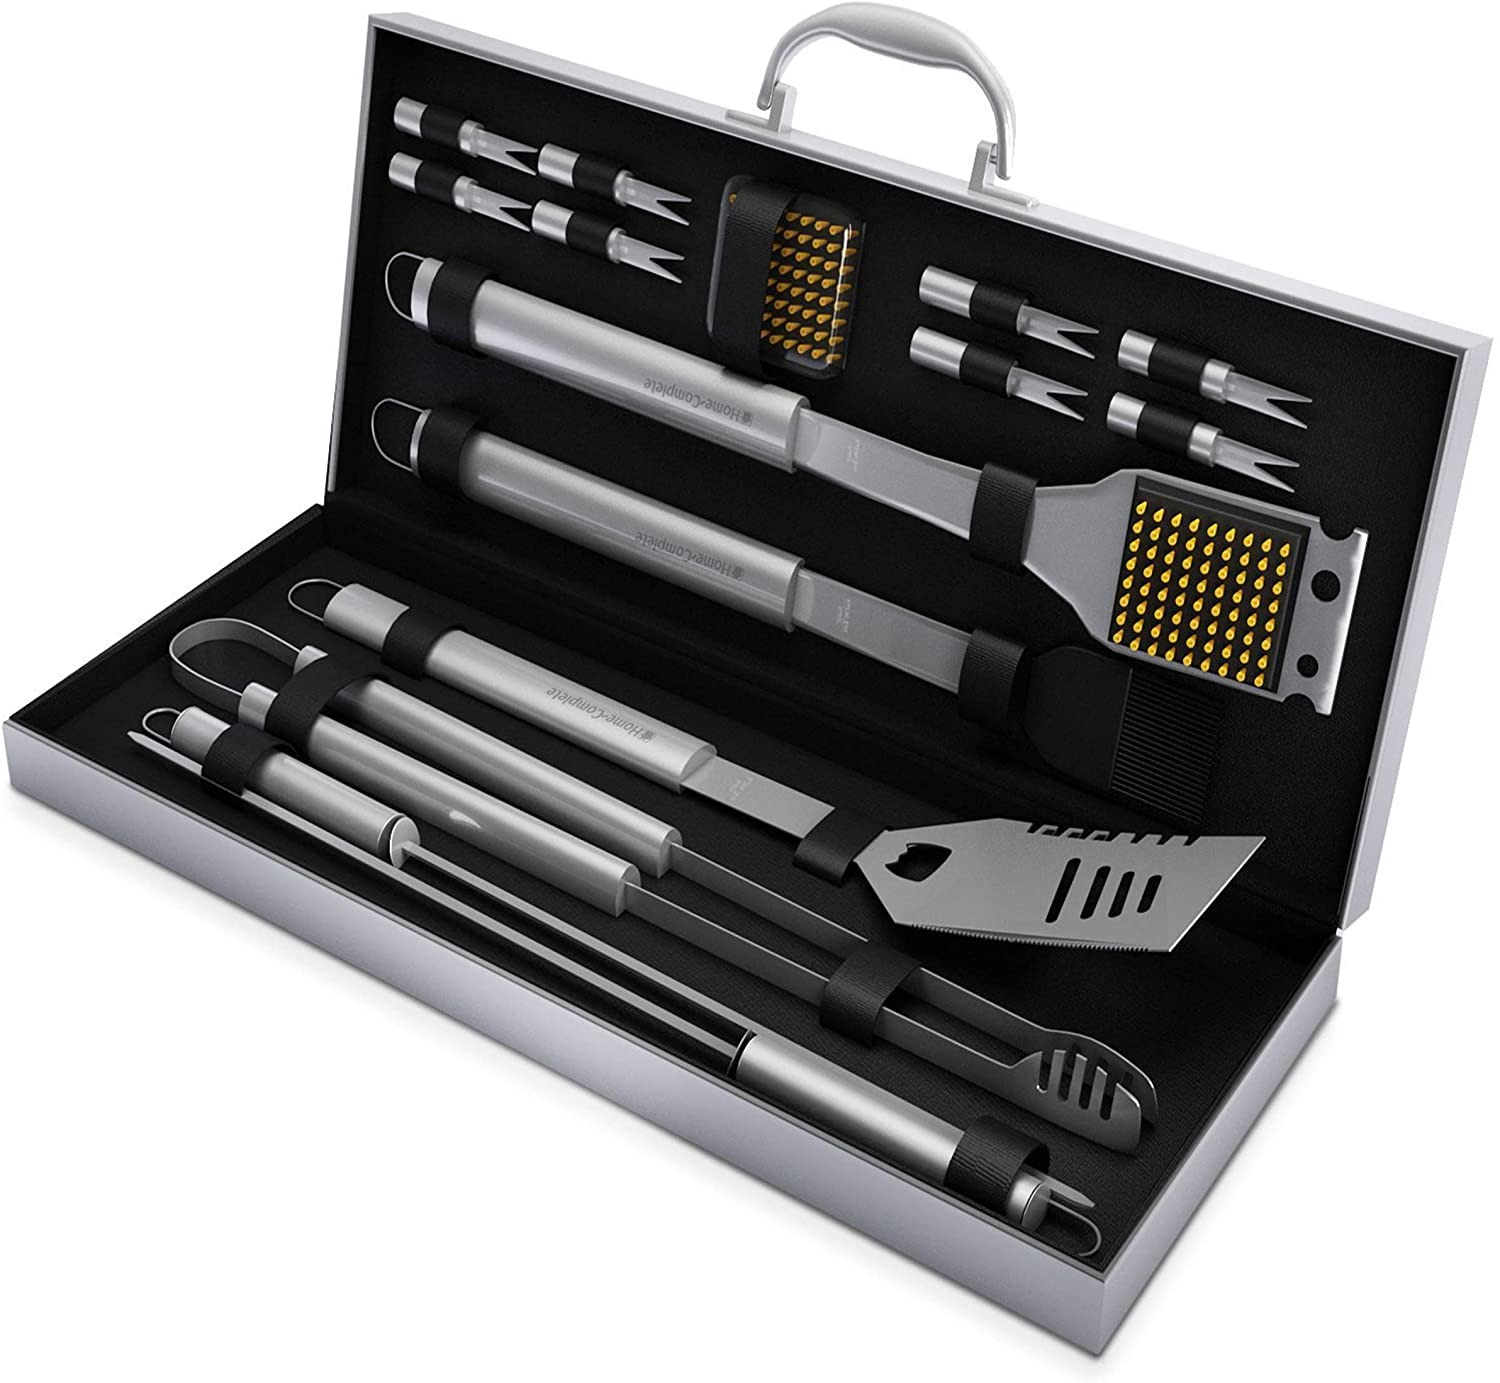 16 Piece Stainless Steel BBQ Grill Tool Set